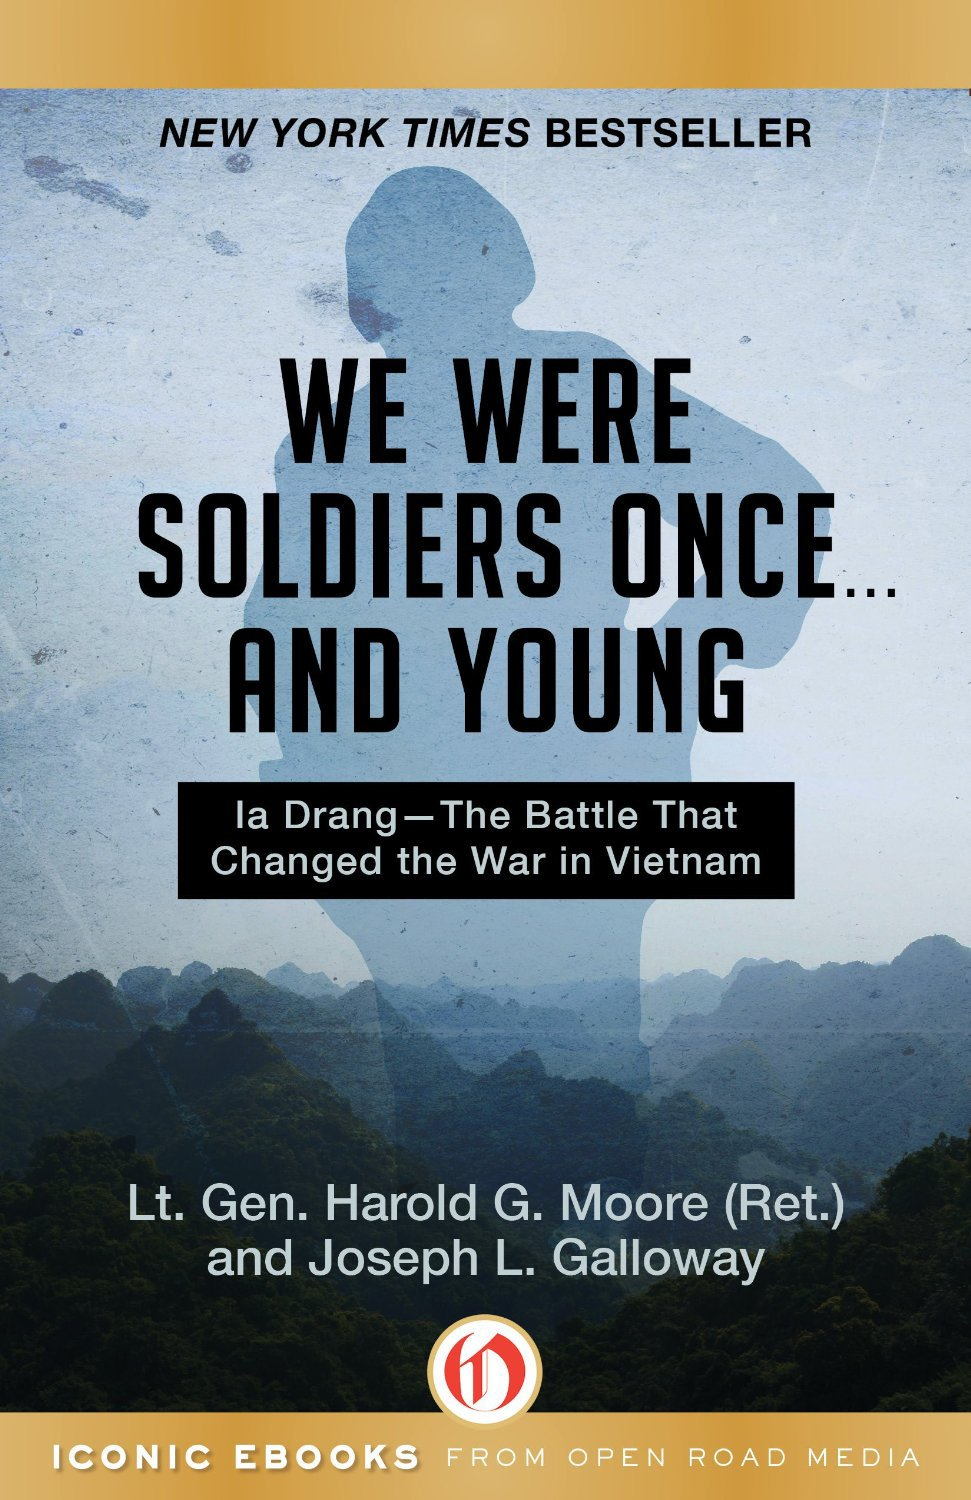 we were soldiers once and young by harold g moore and joseph l galloway.jpg